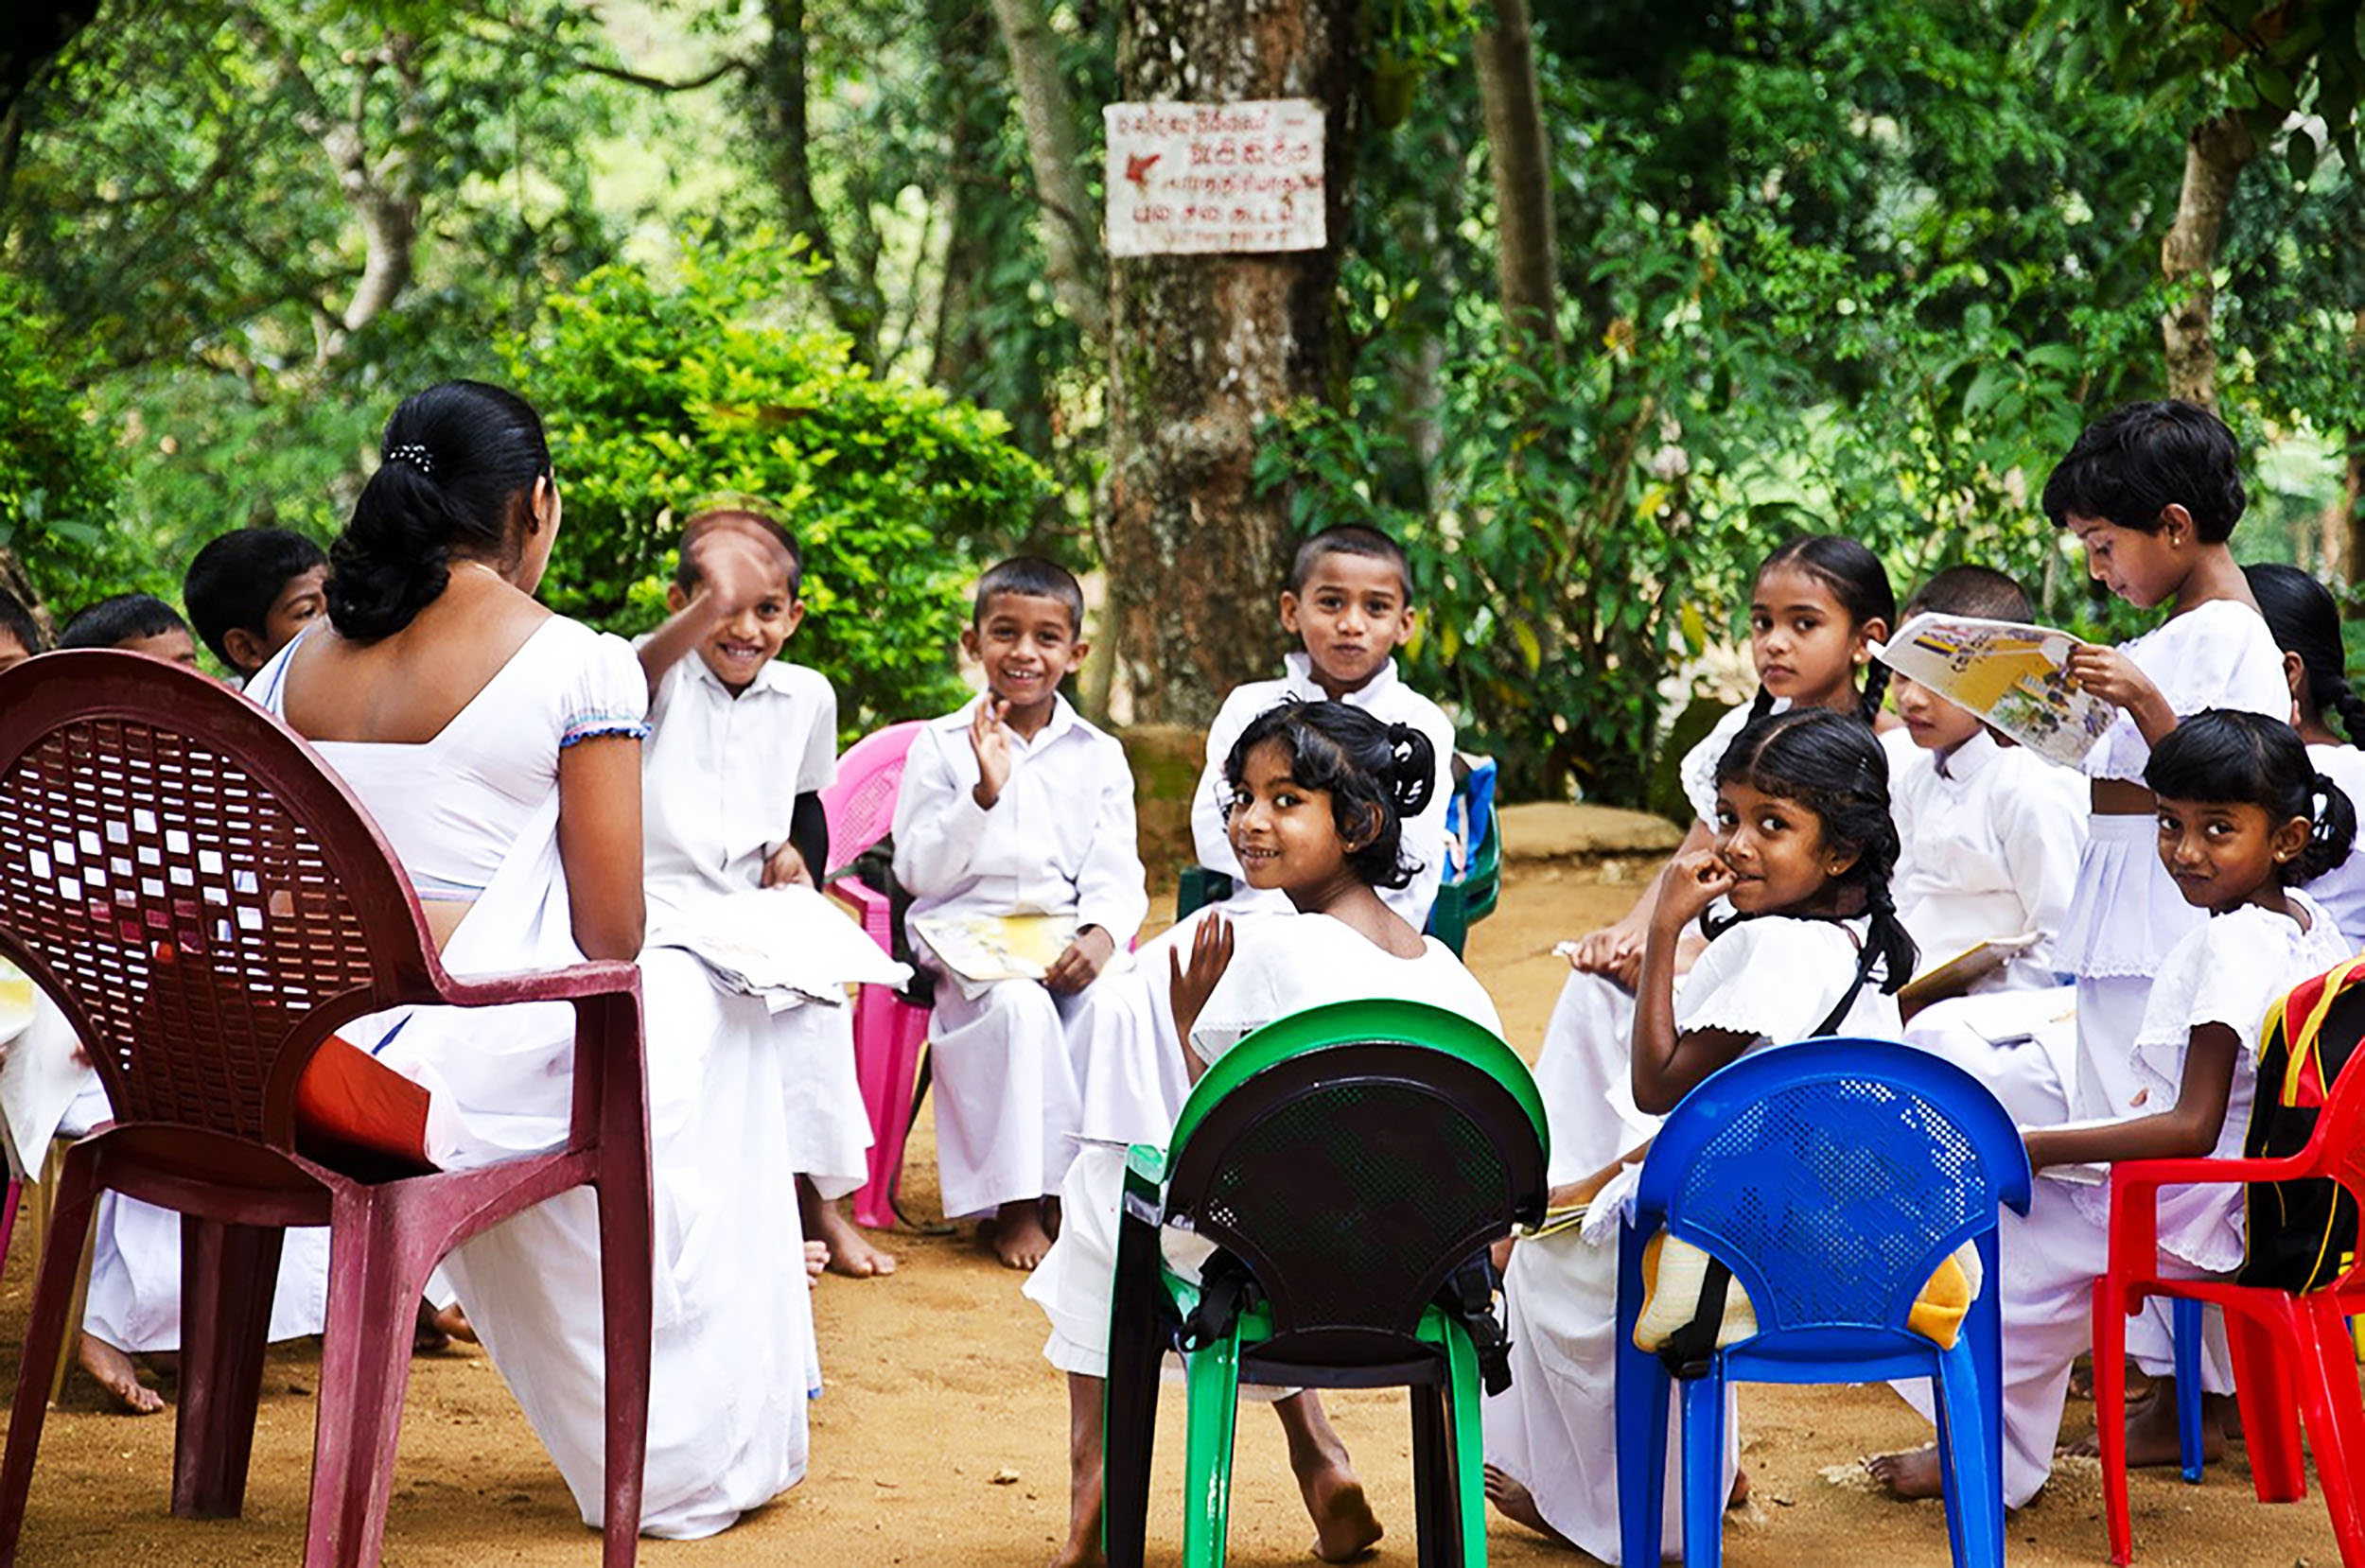 Sri Lanka has a literacy rate of 96%